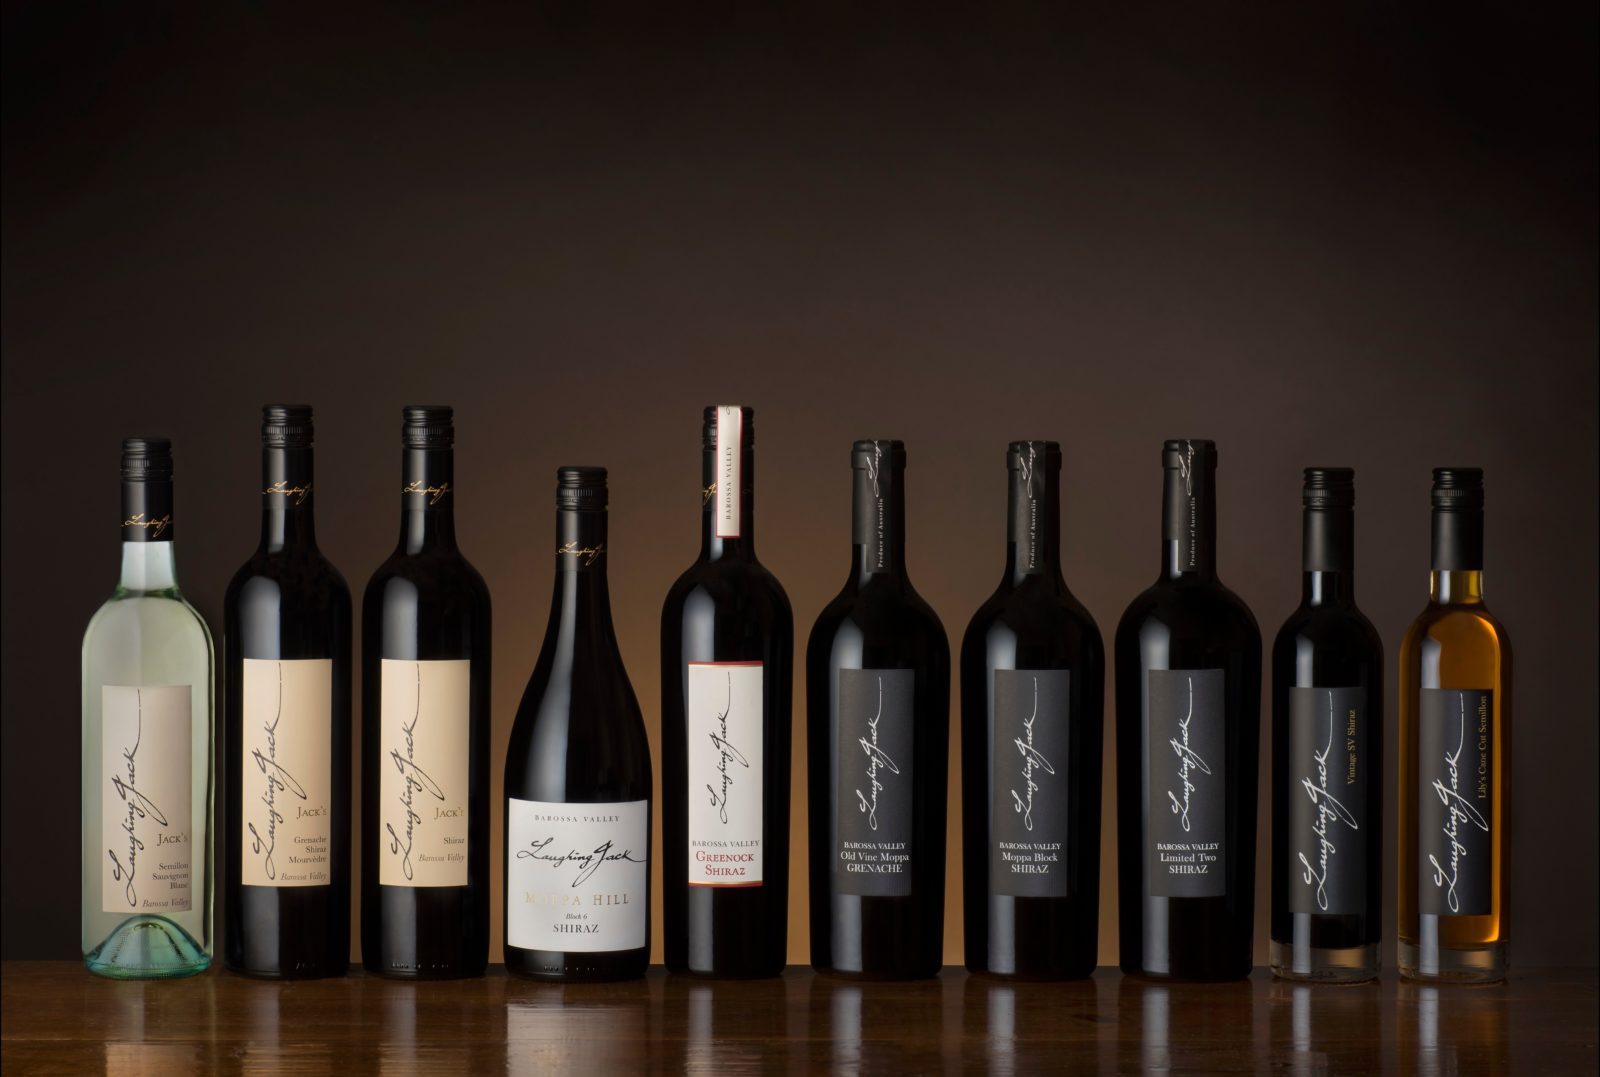 Laughing Jack's full range of wines